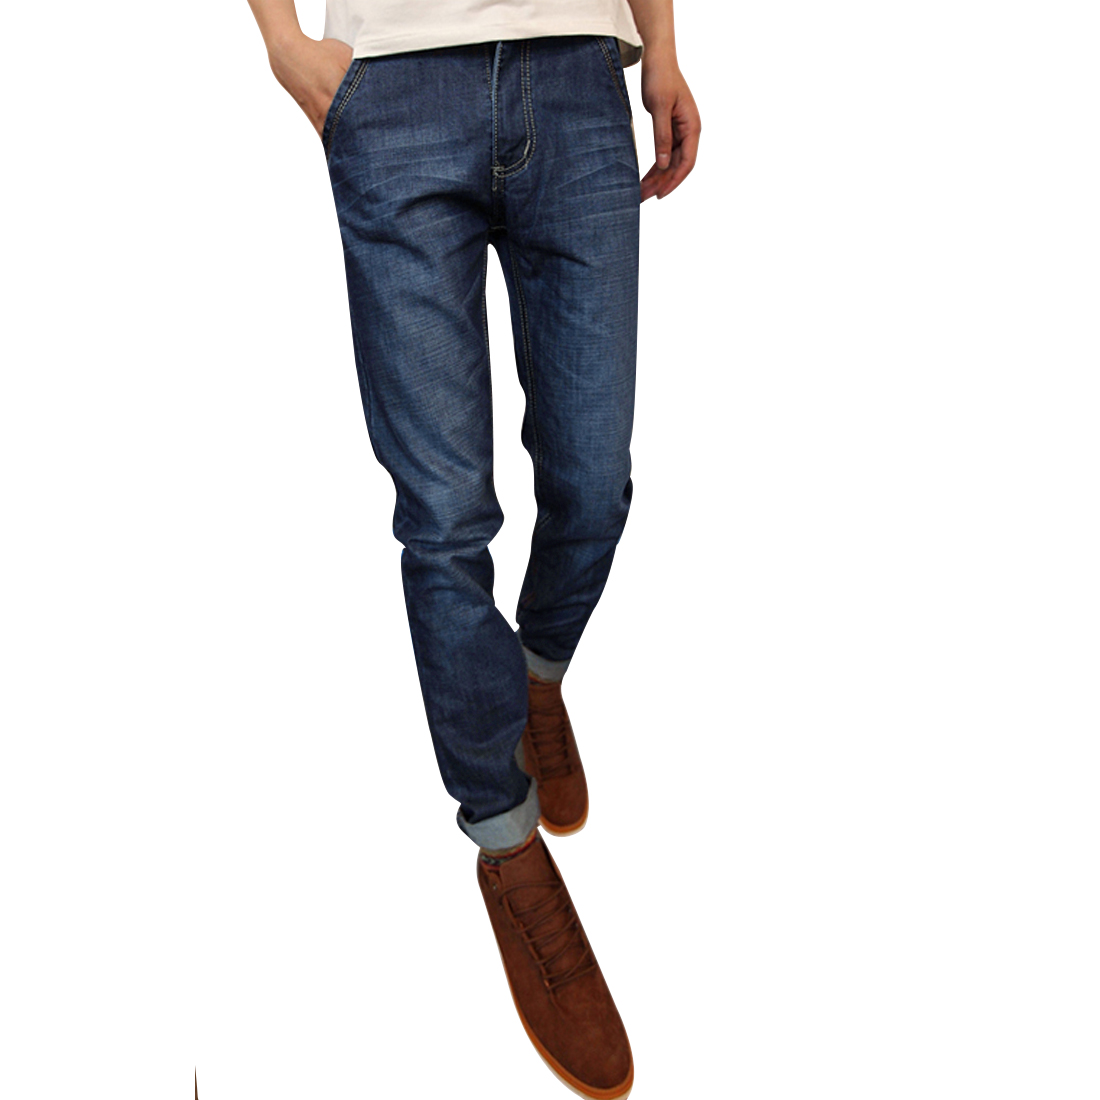 Men Buttoned Closure Washed Detail Straight Leg Chic Jeans Dark Blue W32